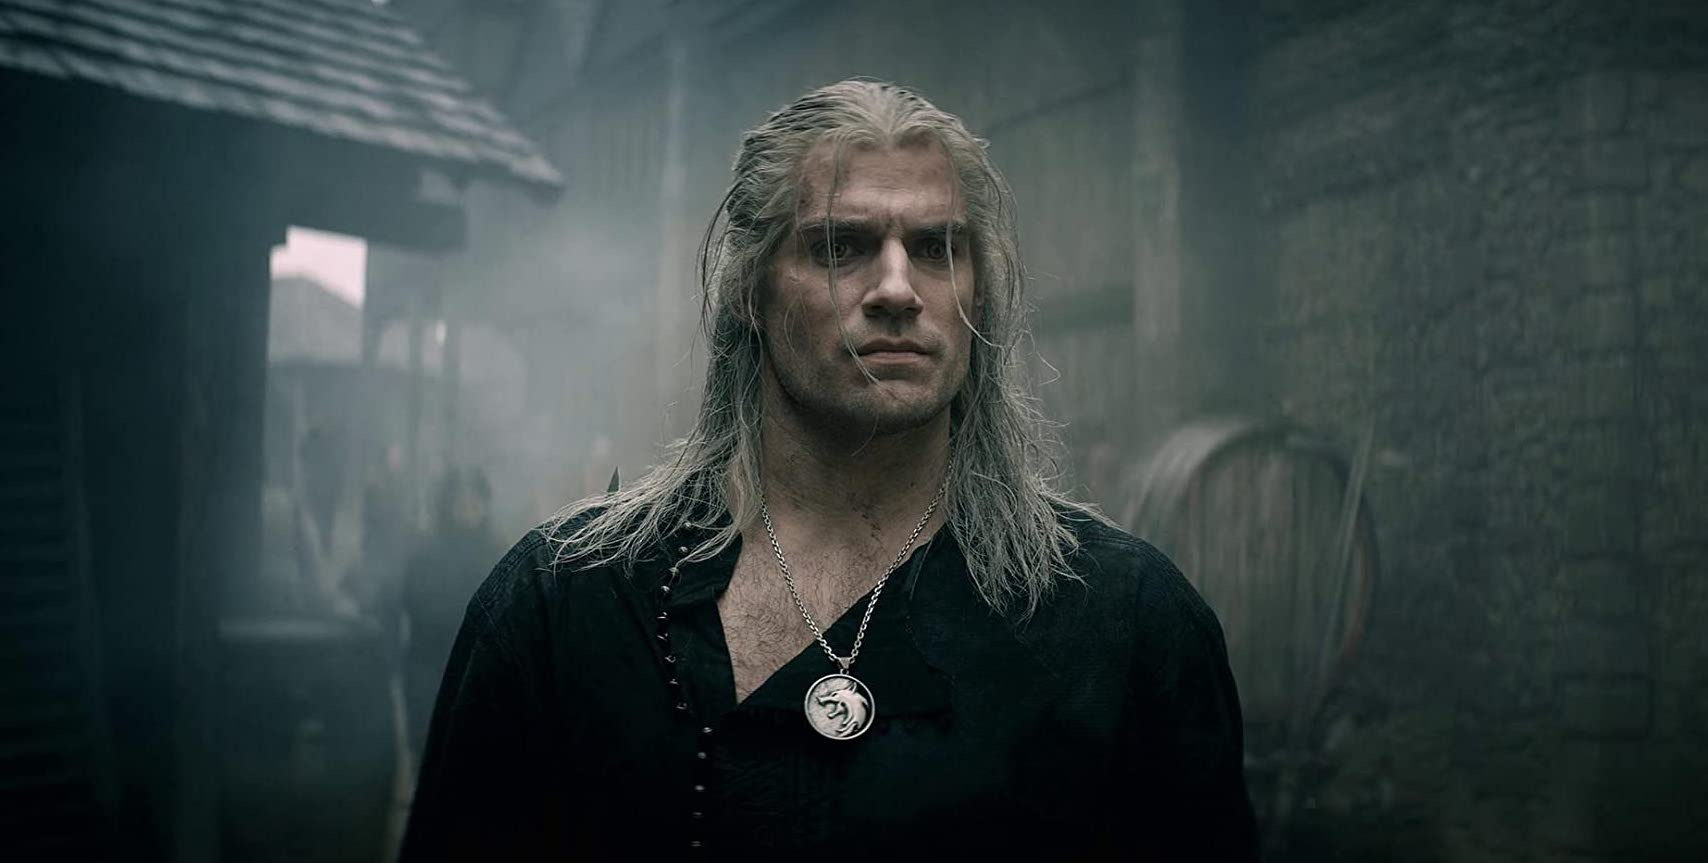 Fan of Netflix's 'The Witcher'? Find Your Destiny by Applying to These Fantasy Gigs